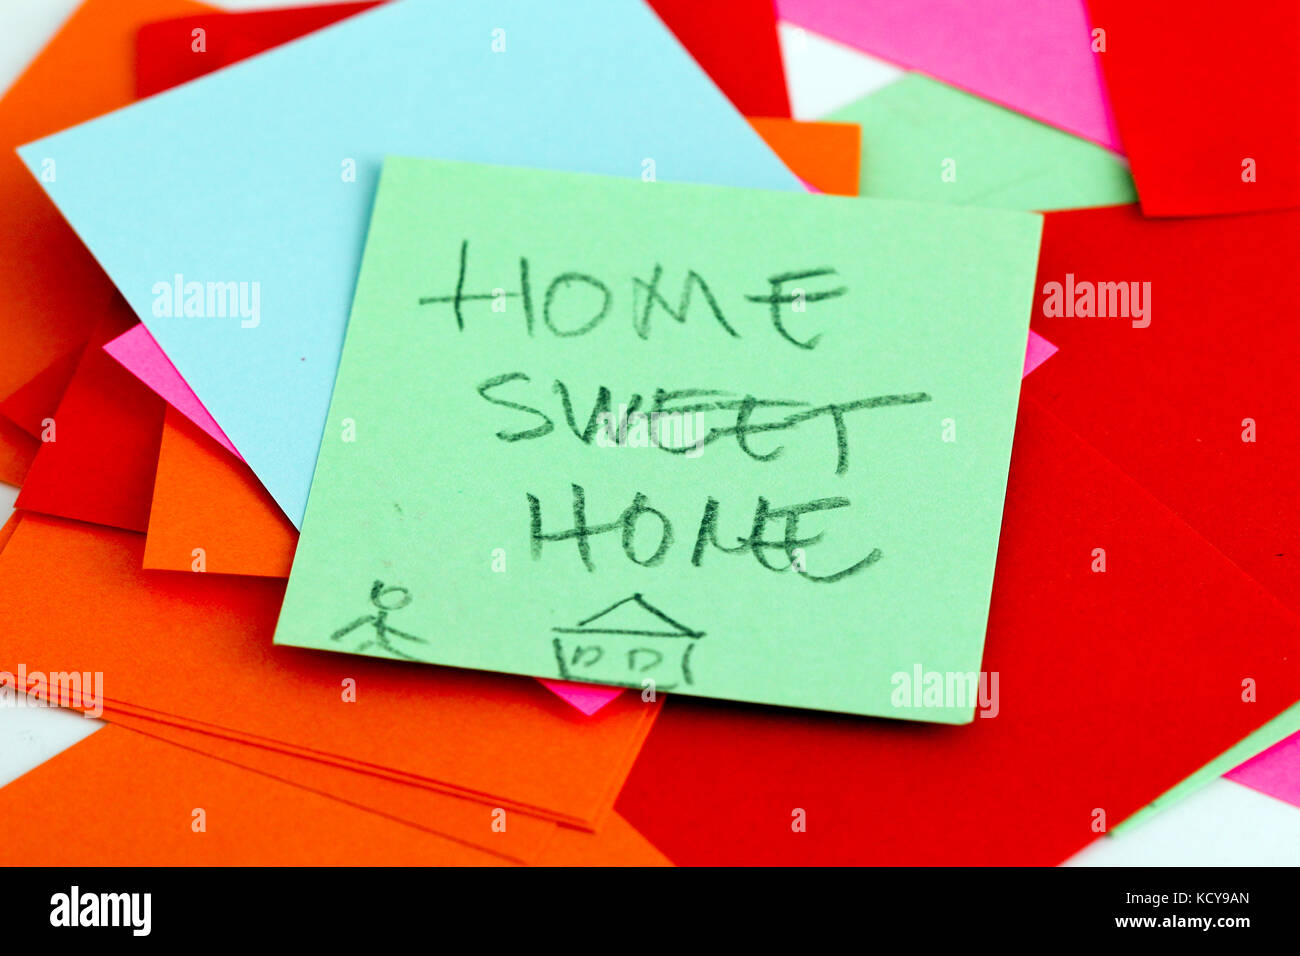 picture of a Note papers on white background,home sweet home text - Stock Image